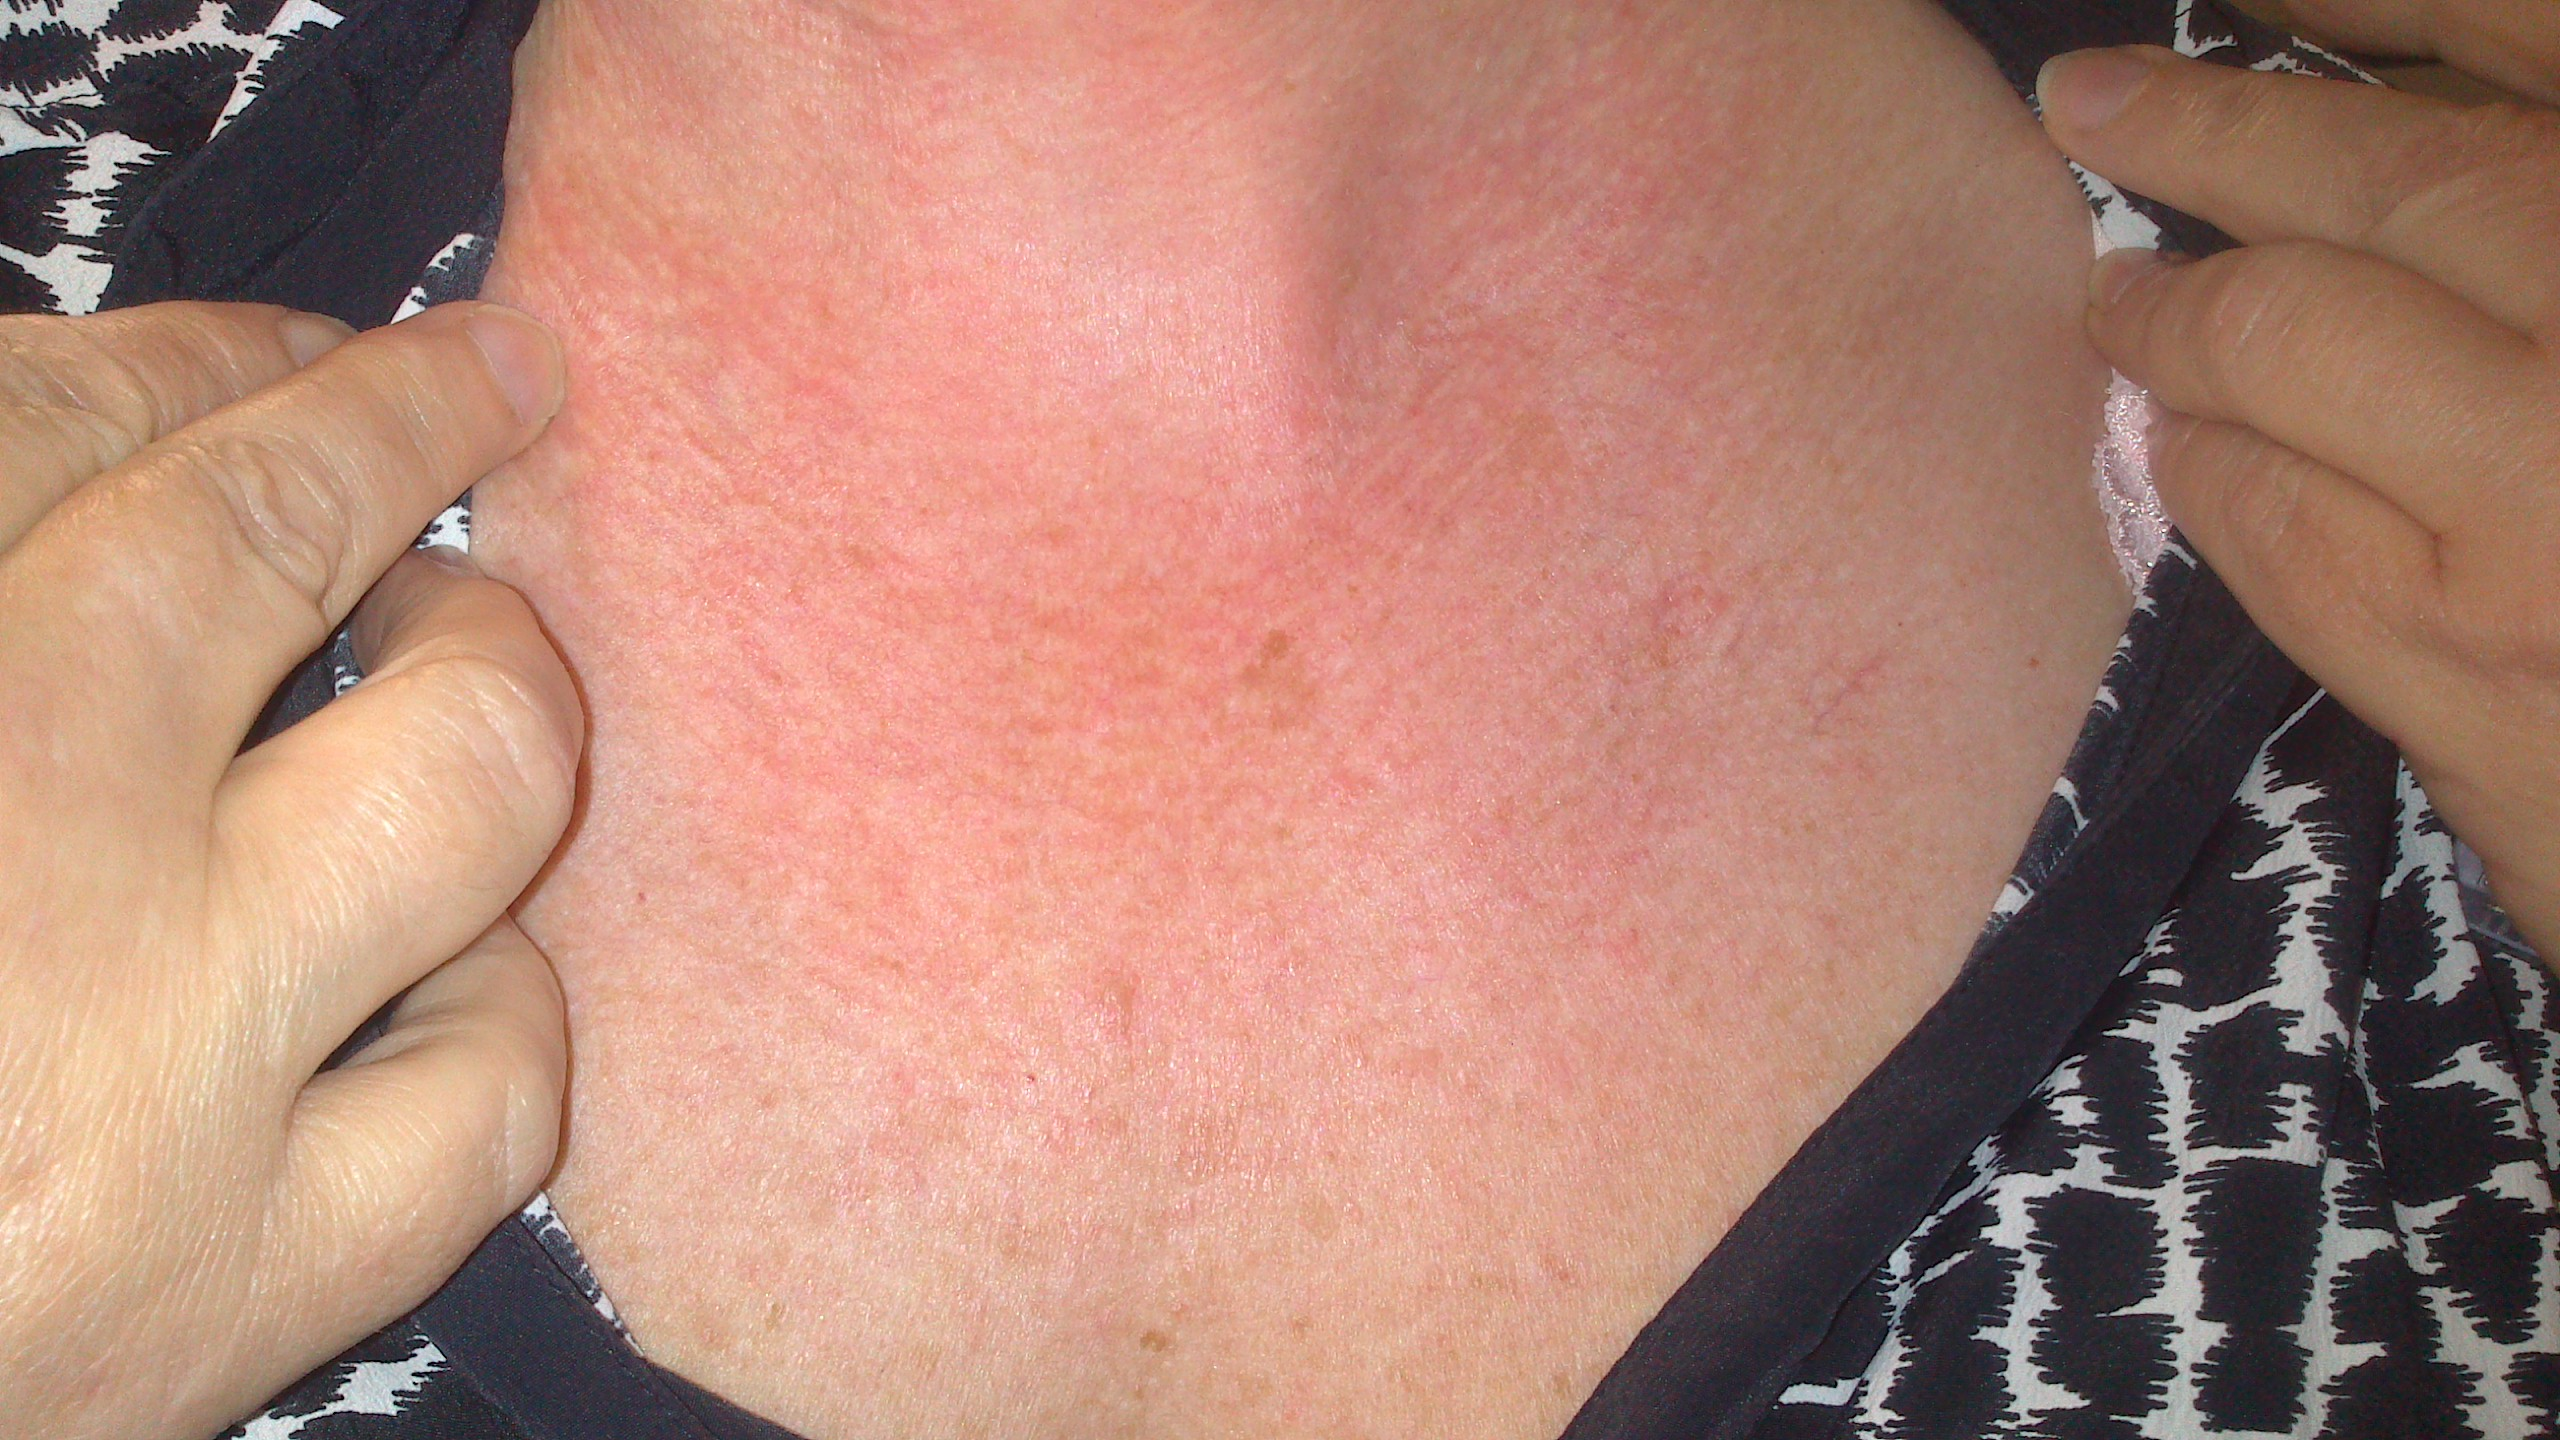 Rashes On Neck And Chest - Pictures, Photos